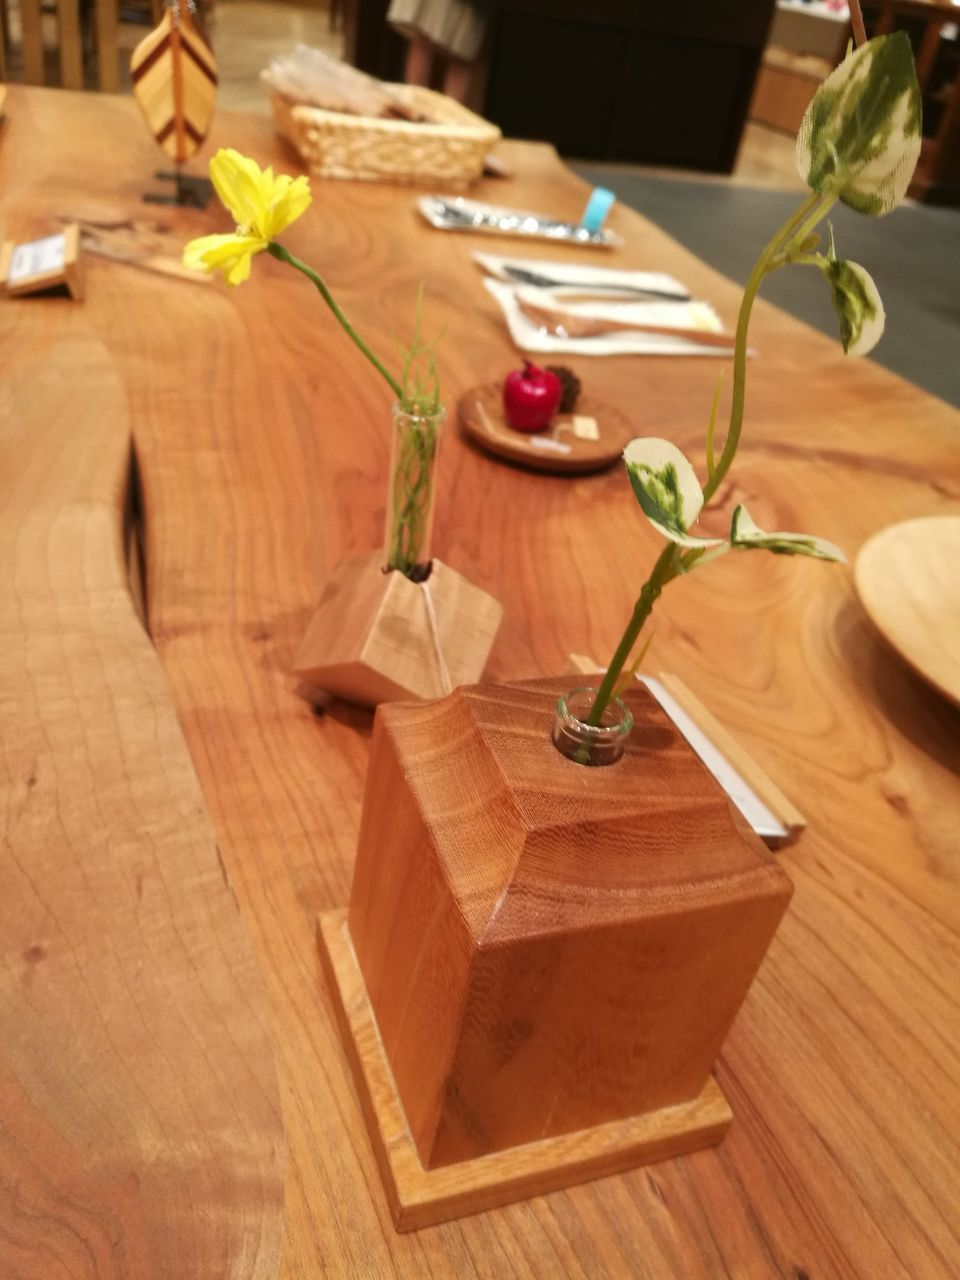 wood - material, table, indoors, no people, close-up, flower, day, nature